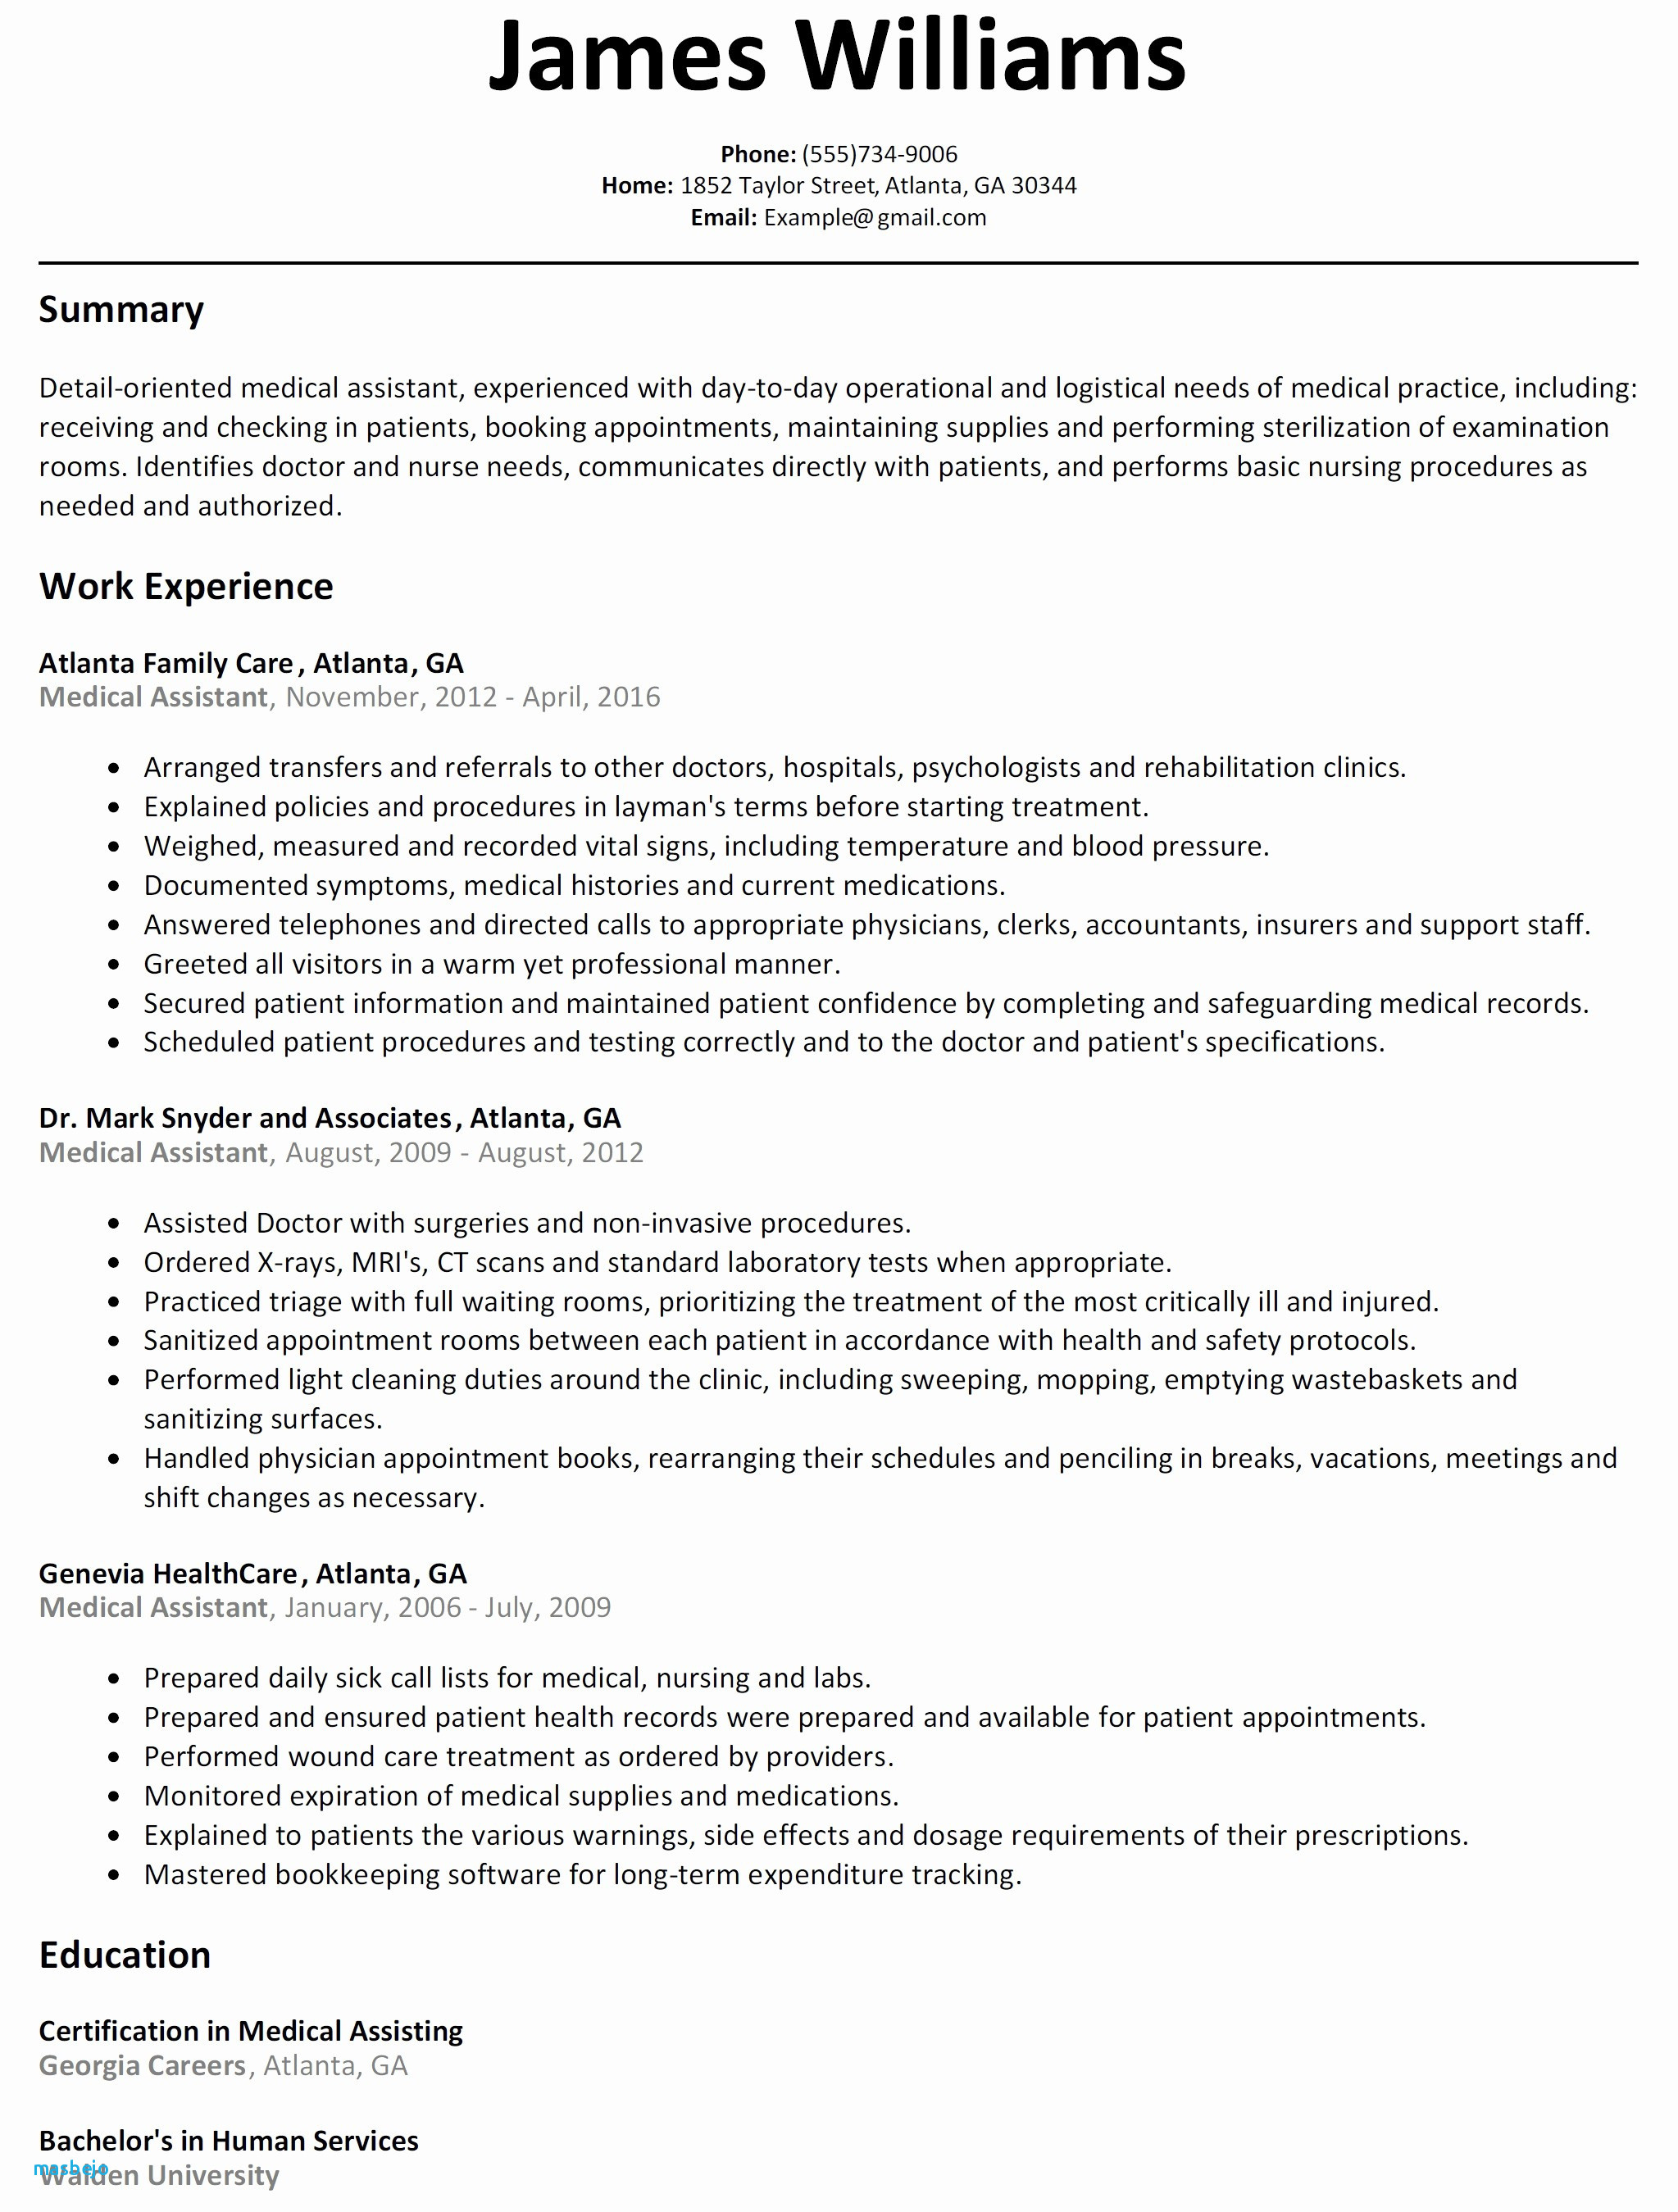 Nursing Resume Examples 2018 - Experienced Nurse Resume Examples Resume for Nurse Elegant New Nurse